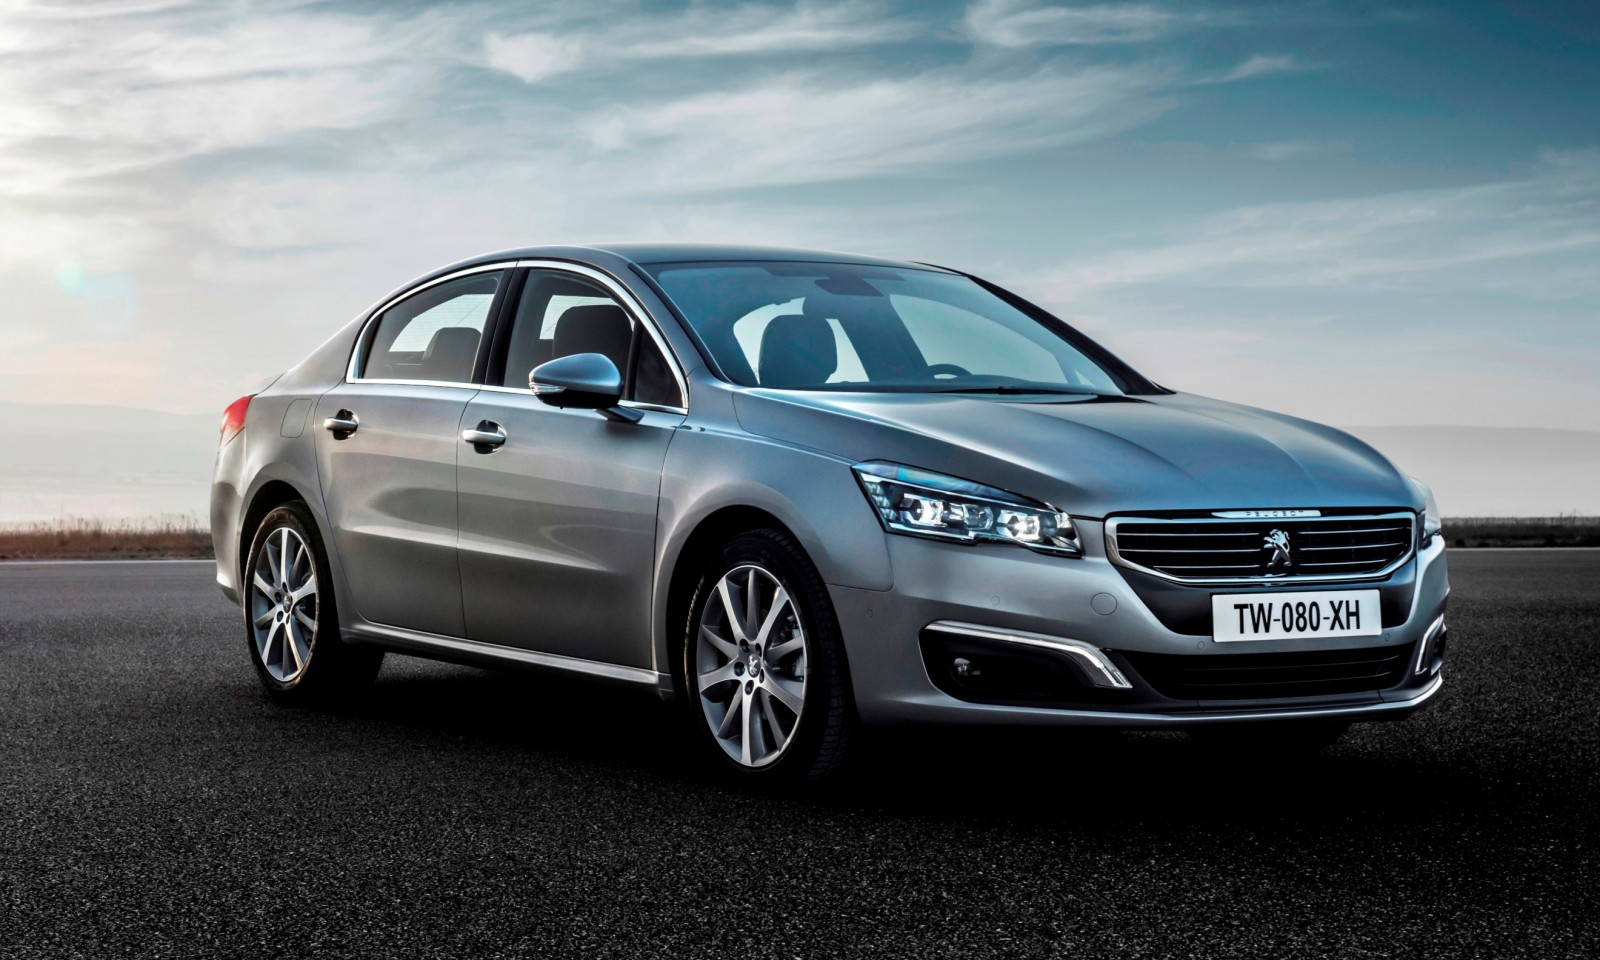 Update2 New Photos - 2015 Peugeot 508 Facelifted With New LED DRLs, Box-Design Beams and Tweaked Cabin Tech 7